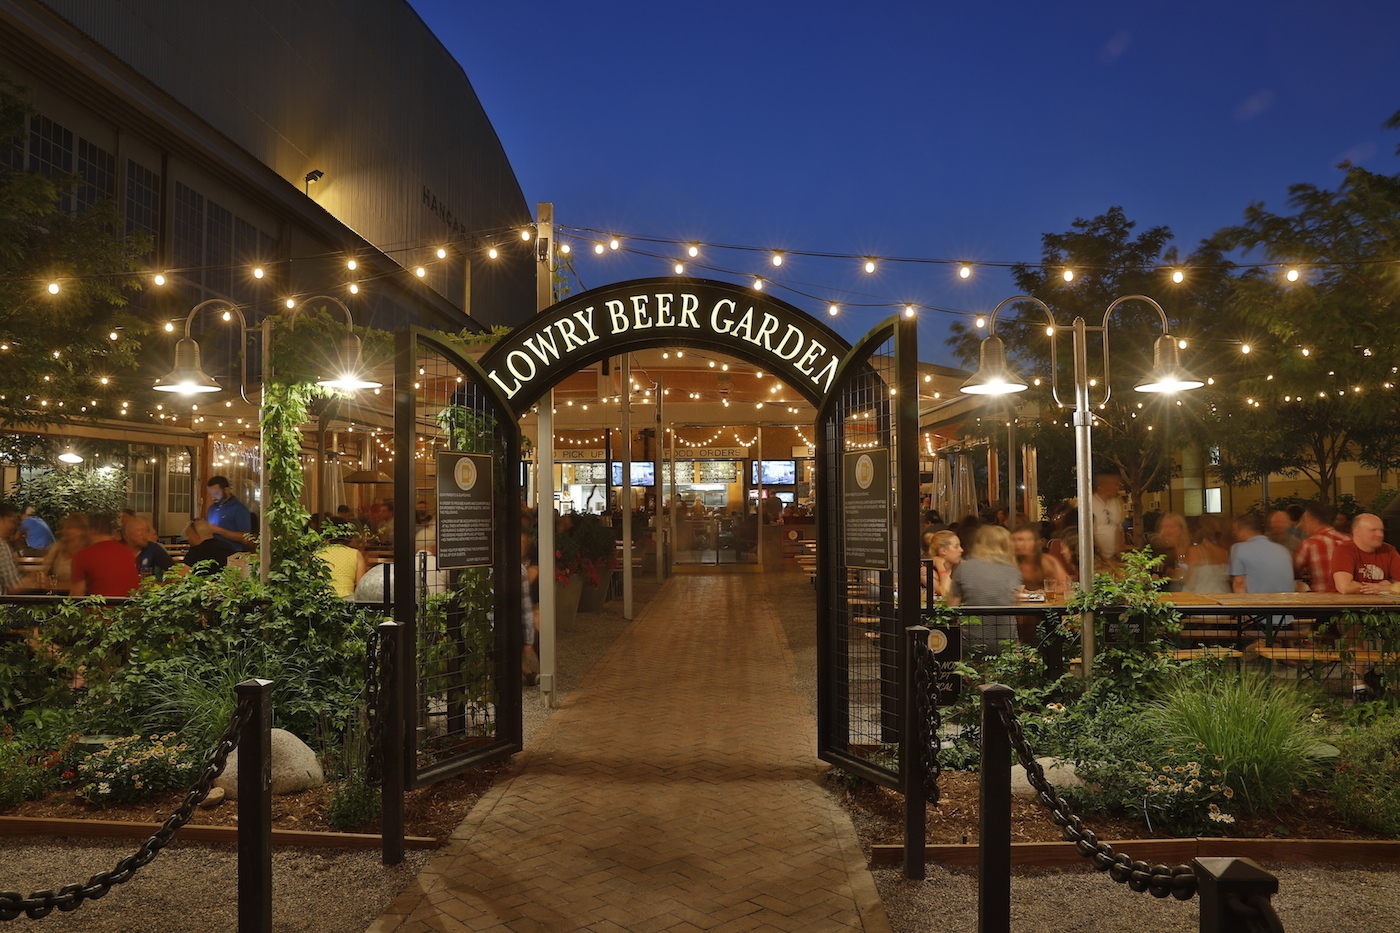 The Best Beer Gardens to Visit Right Now   October